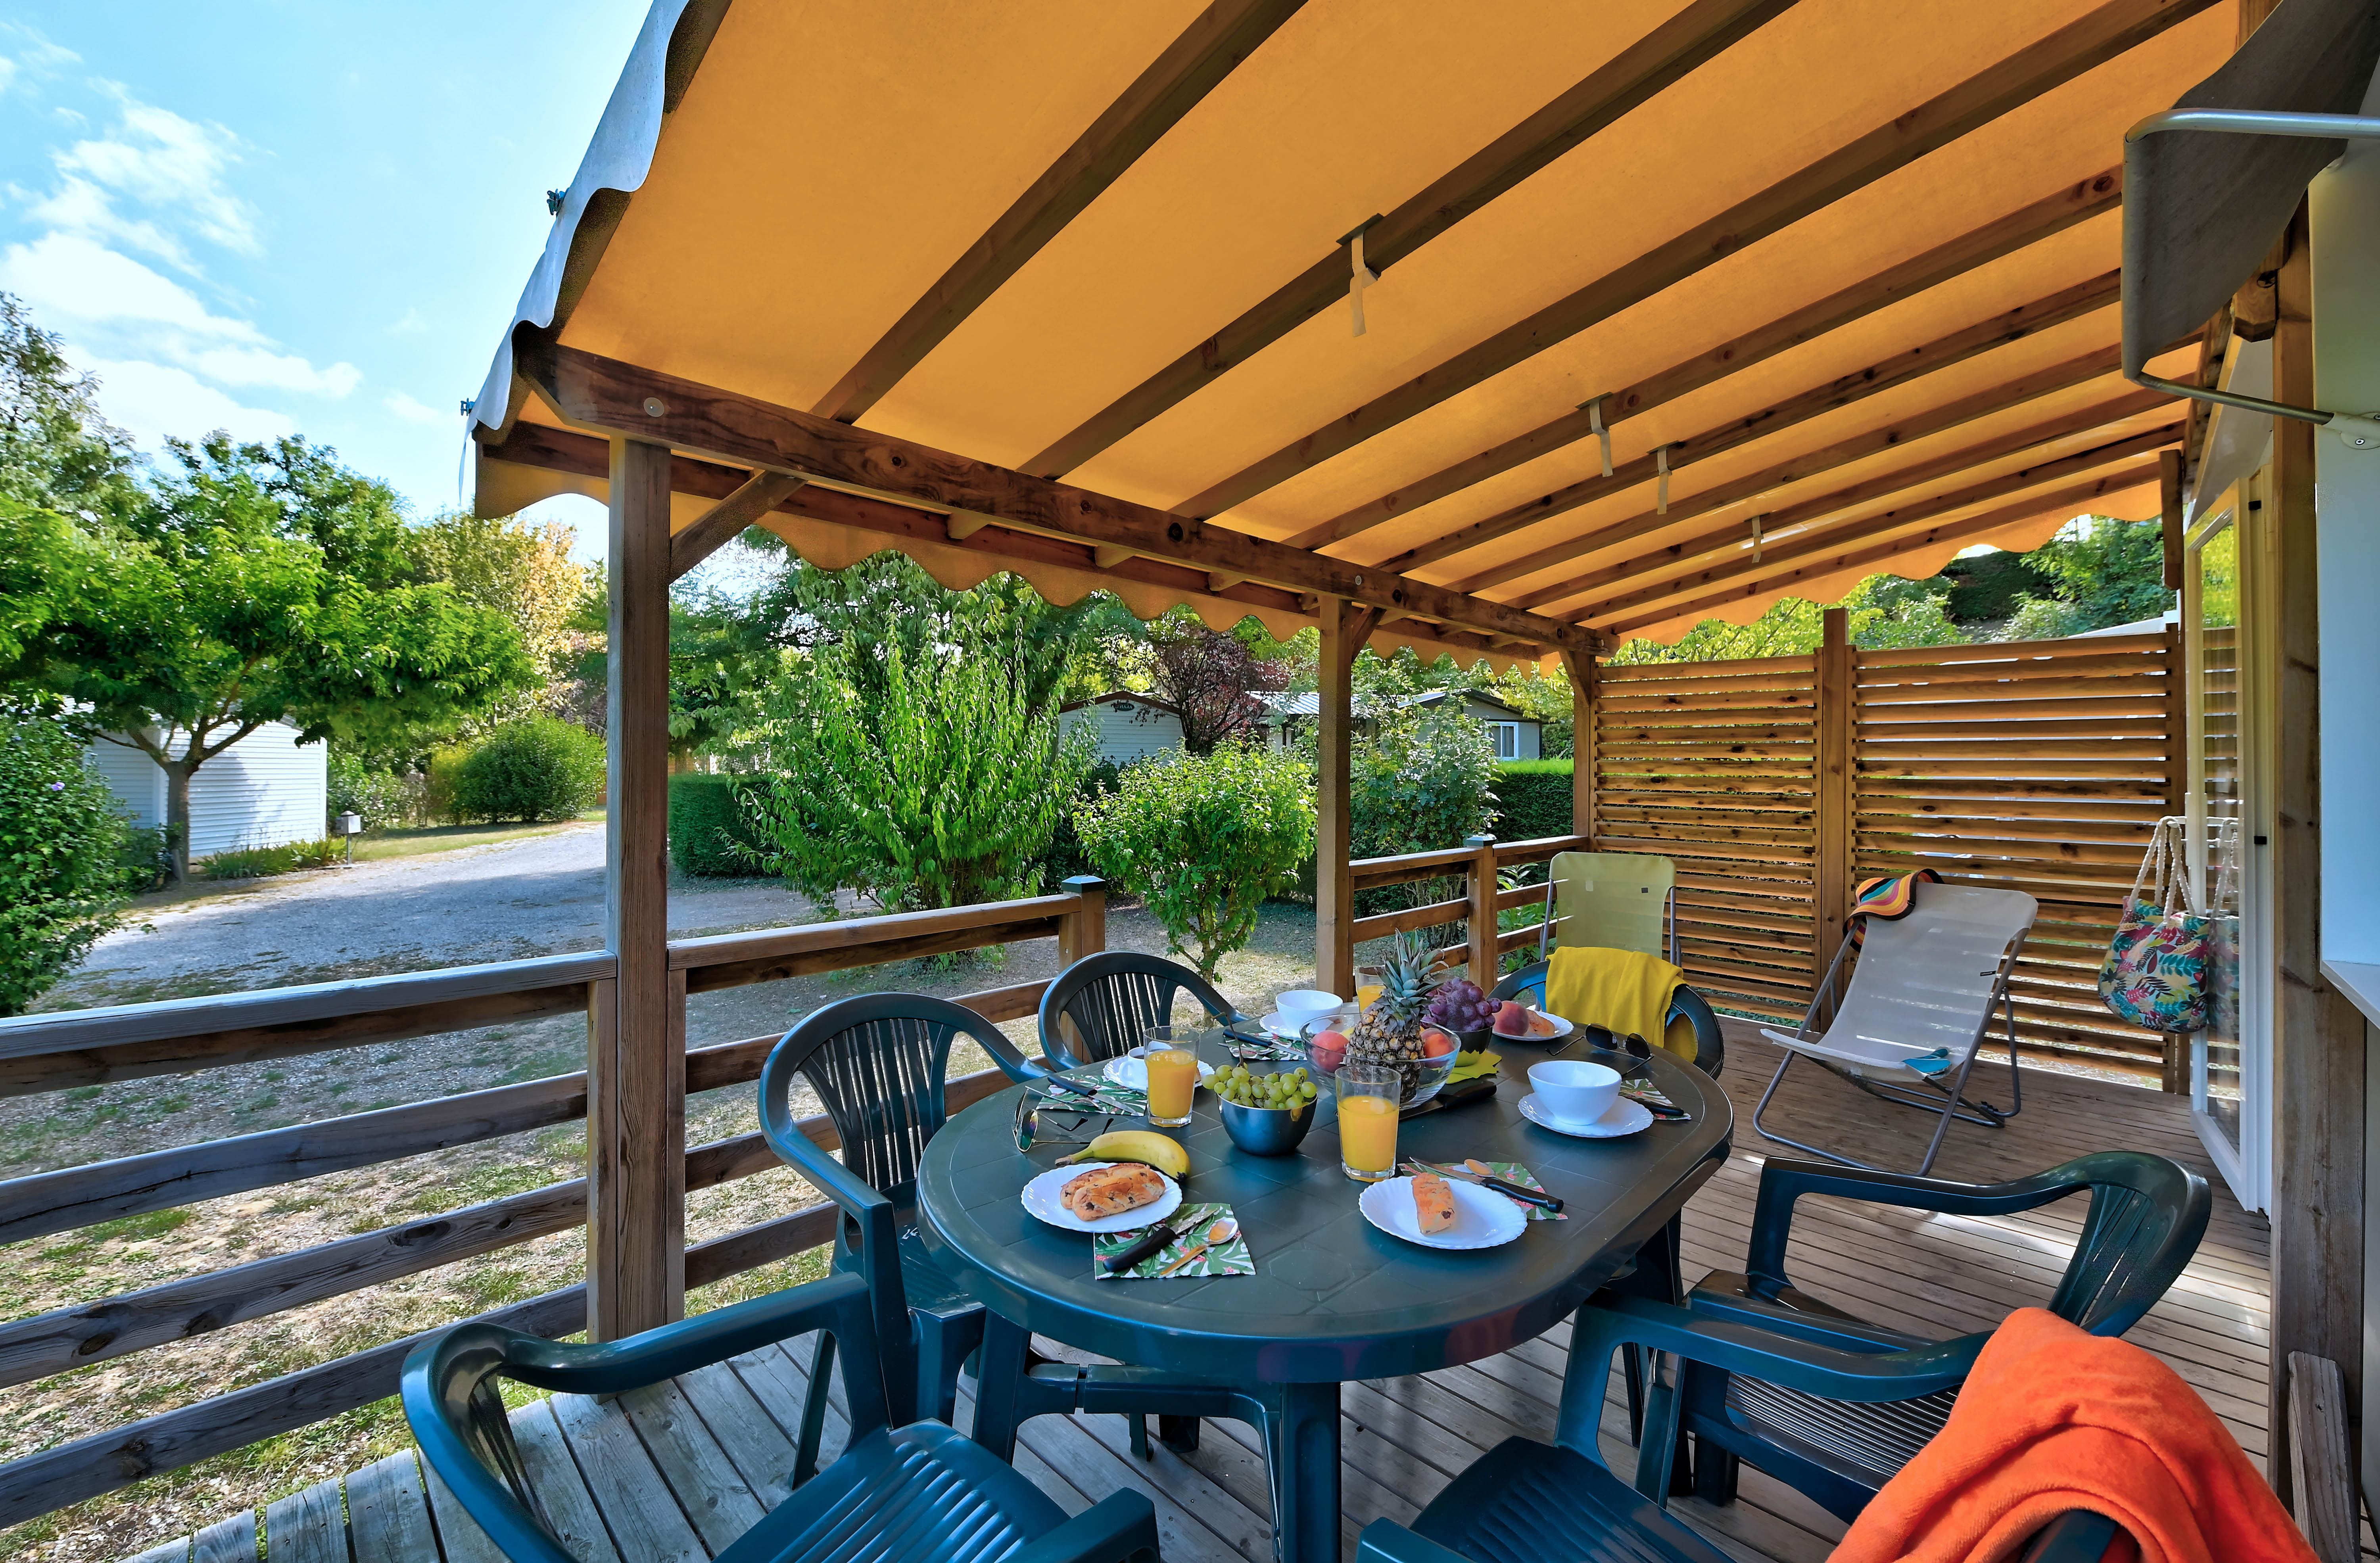 Accommodation - Mobile Home Premium 31M² (Wash Dishes + Tv) + 31M² (3 Bedrooms) + Covered Terrace - Flower Camping La Chataigneraie